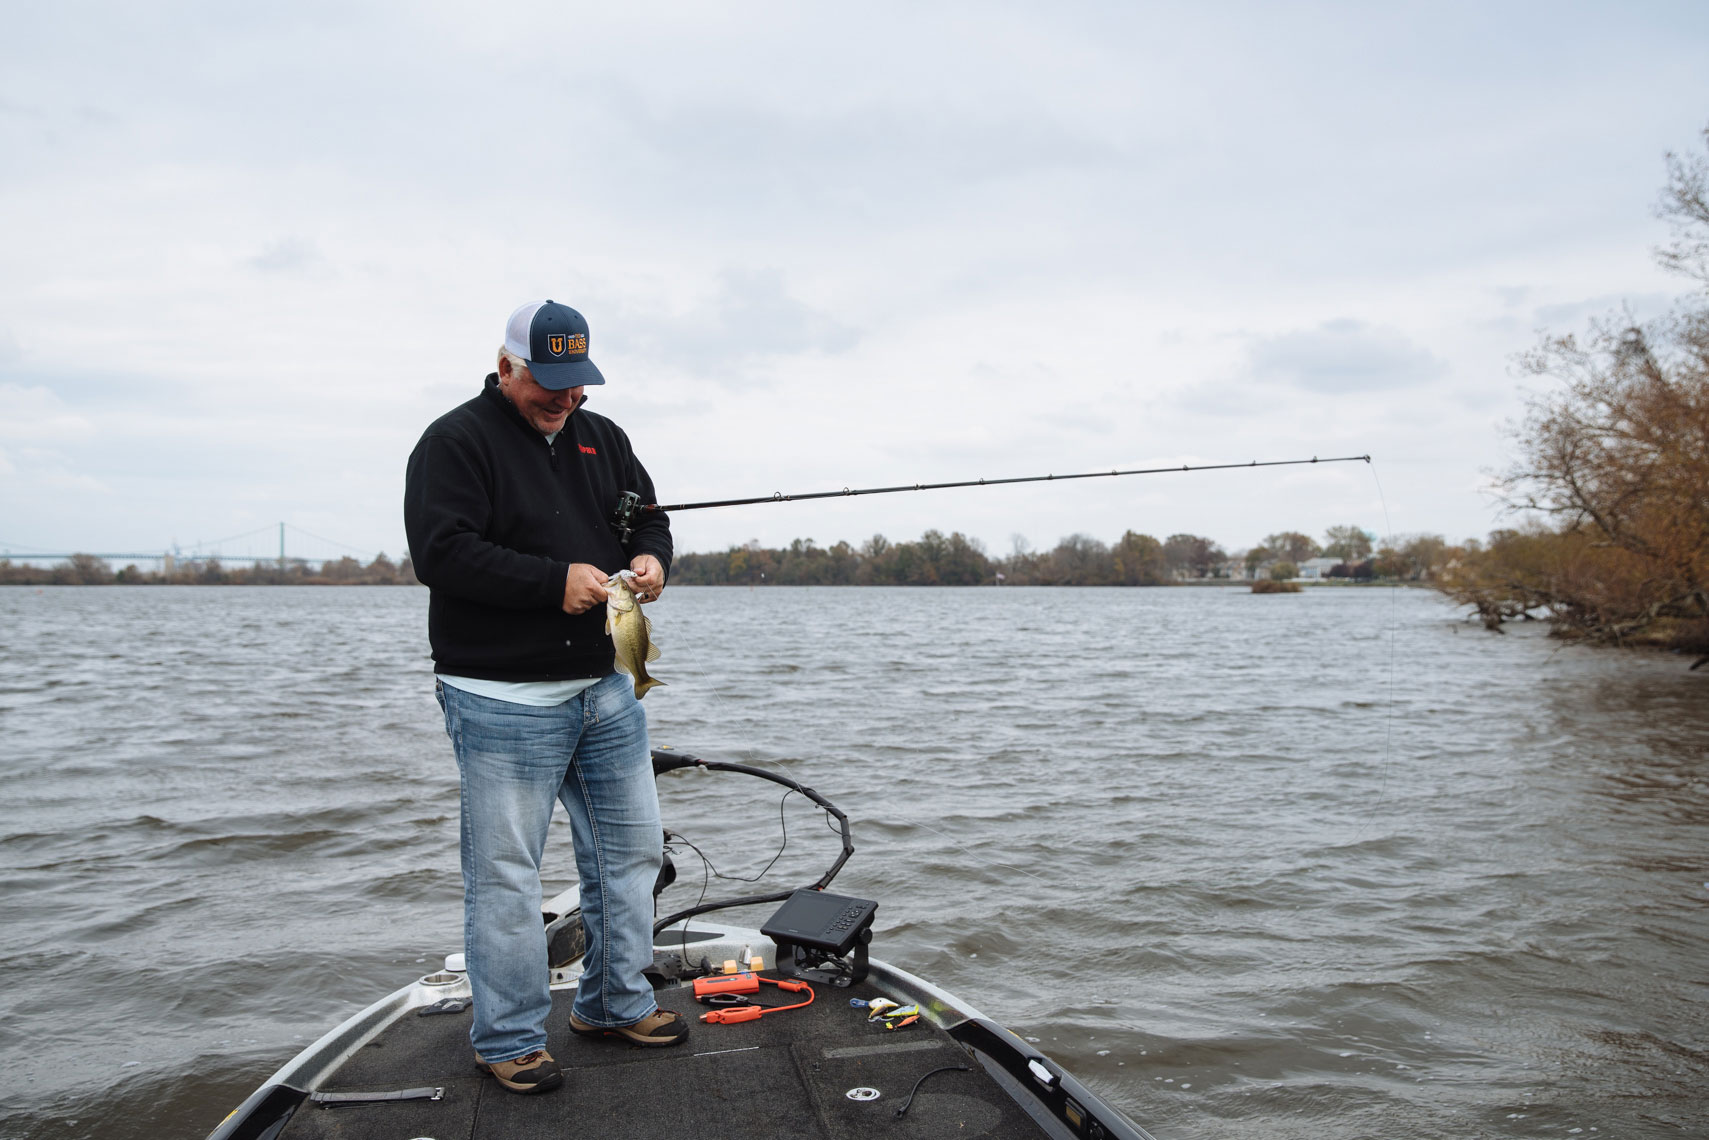 Portable battery in use by a bassmaster